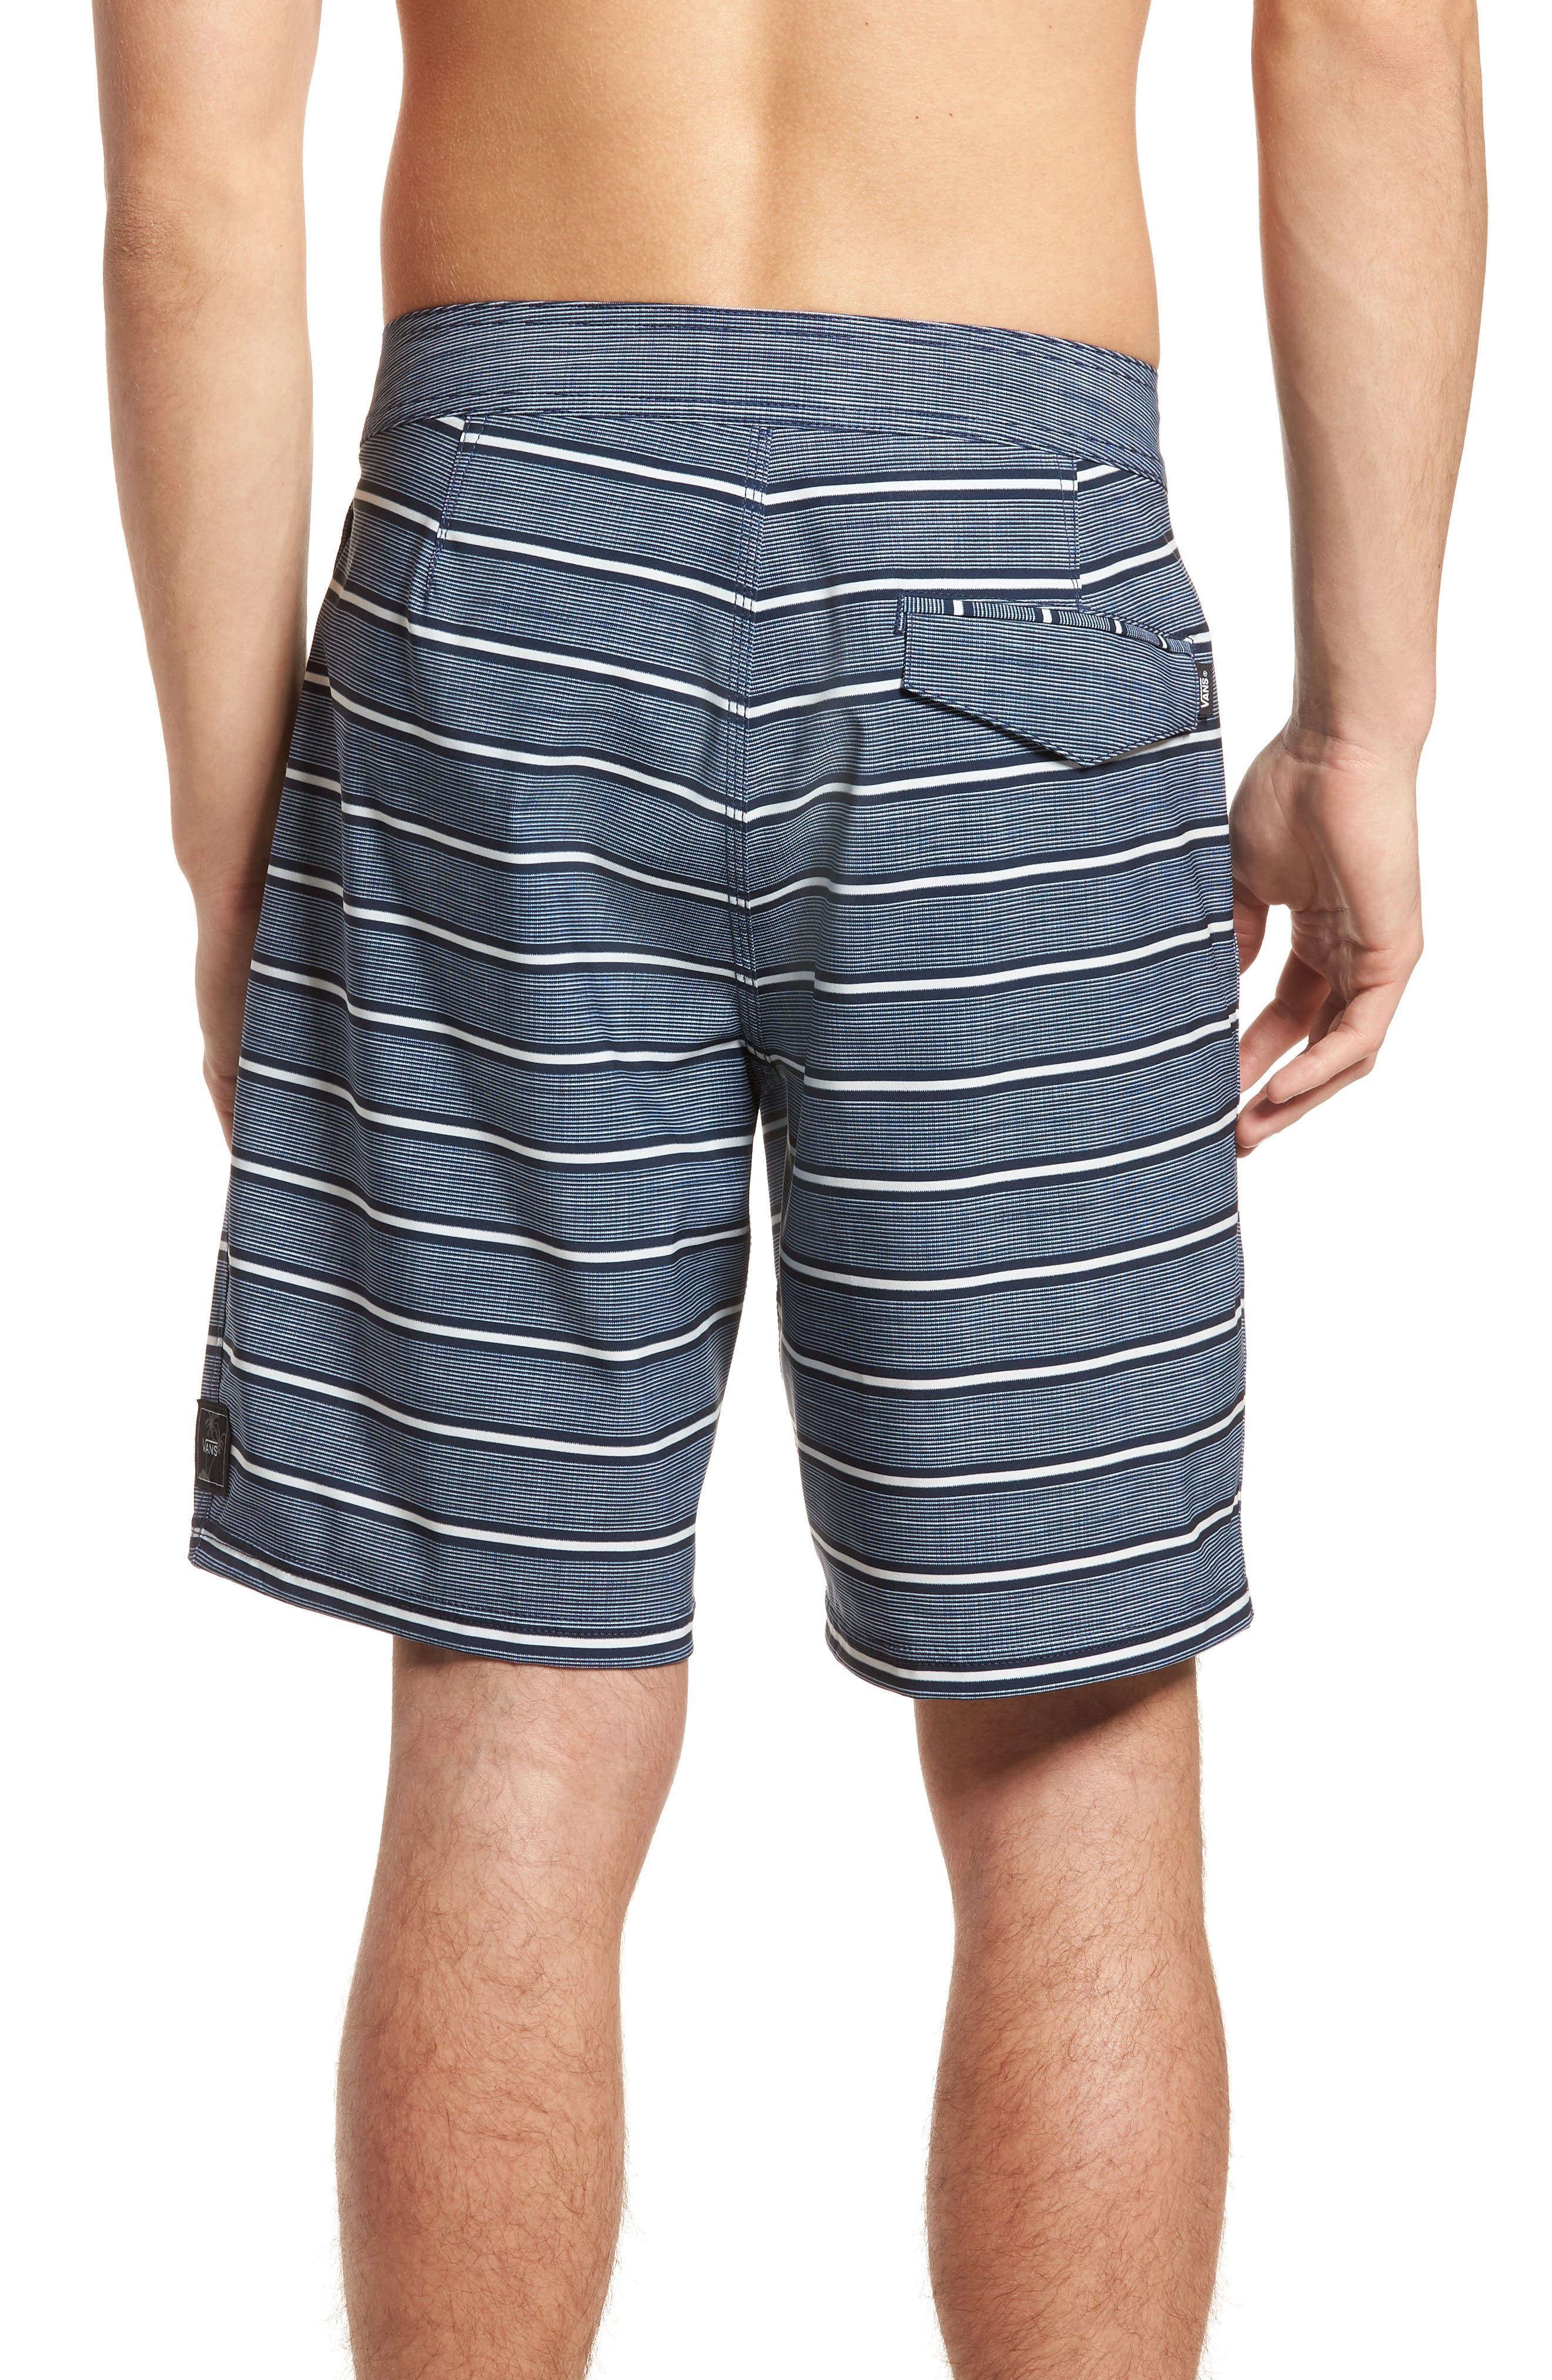 Rooftop Board Shorts,                             Alternate thumbnail 2, color,                             Dress Blues